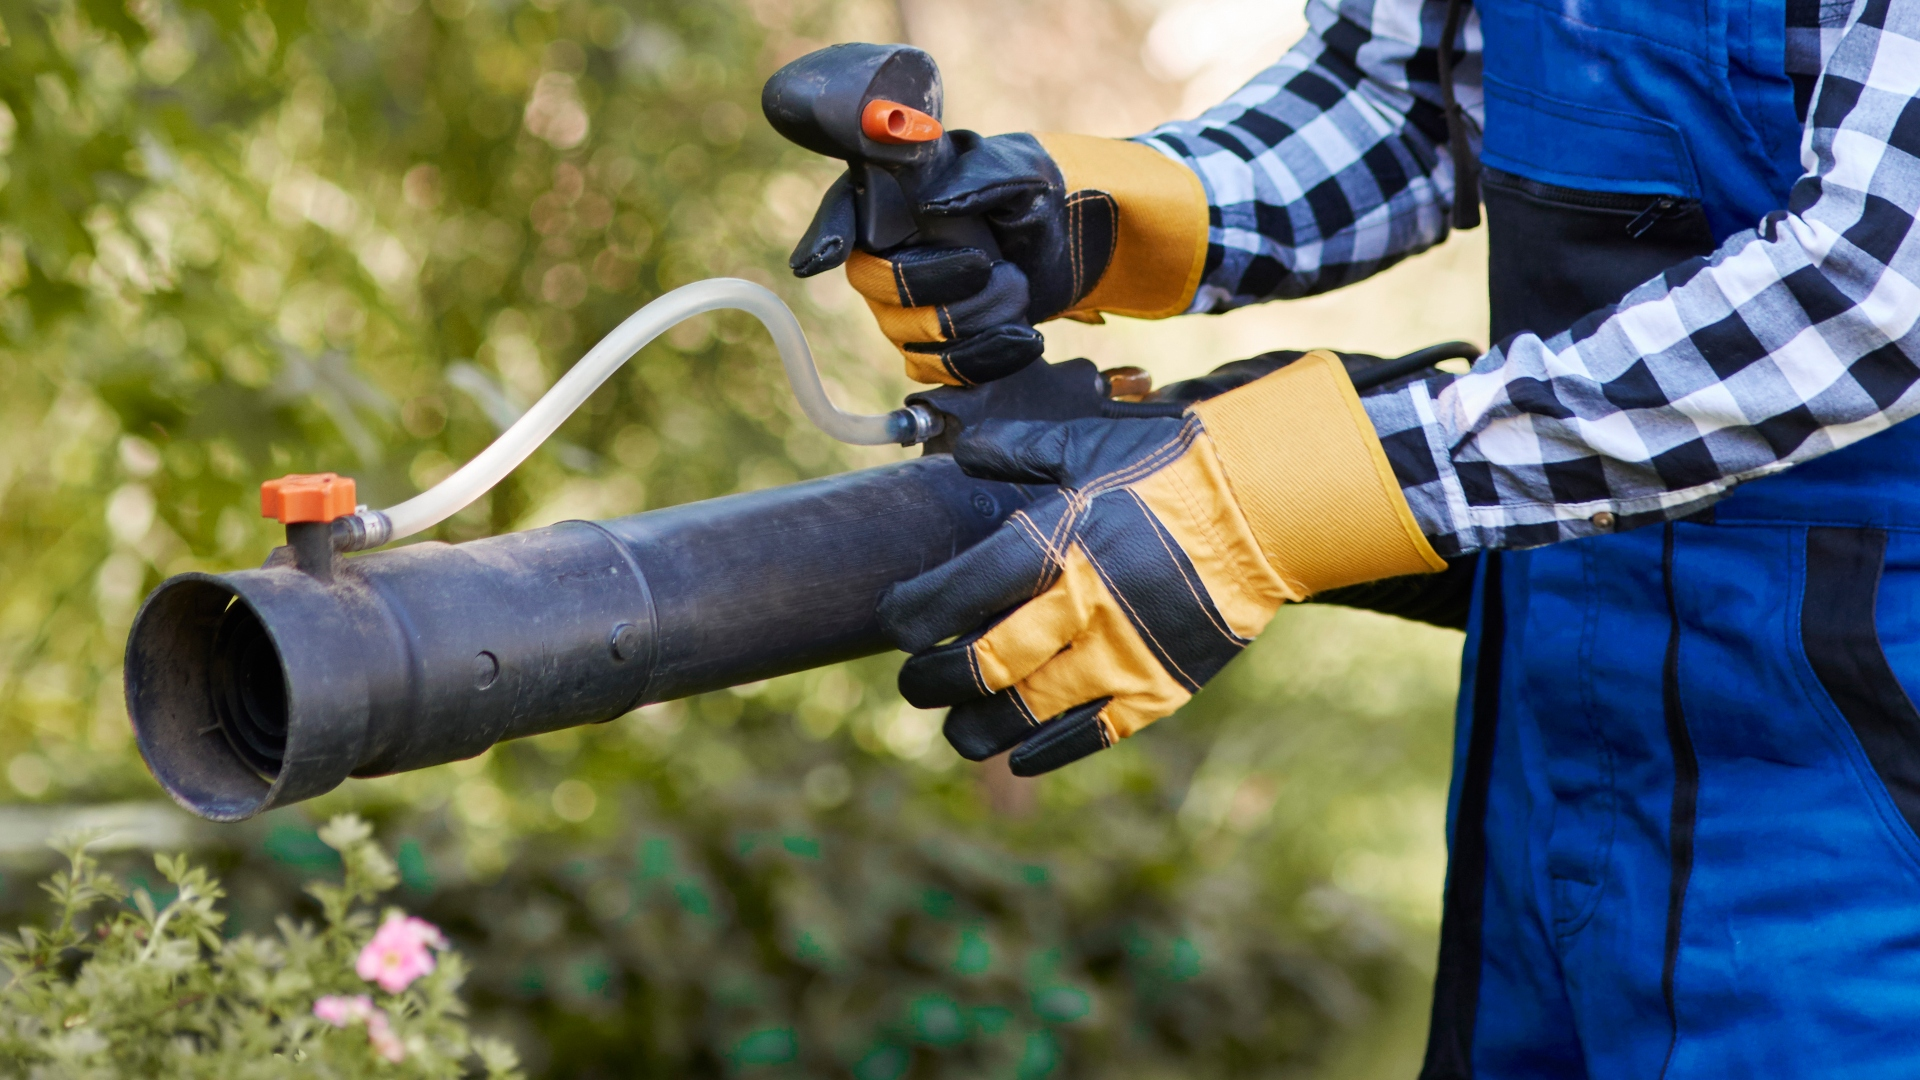 Gardener using modern gardening equipment